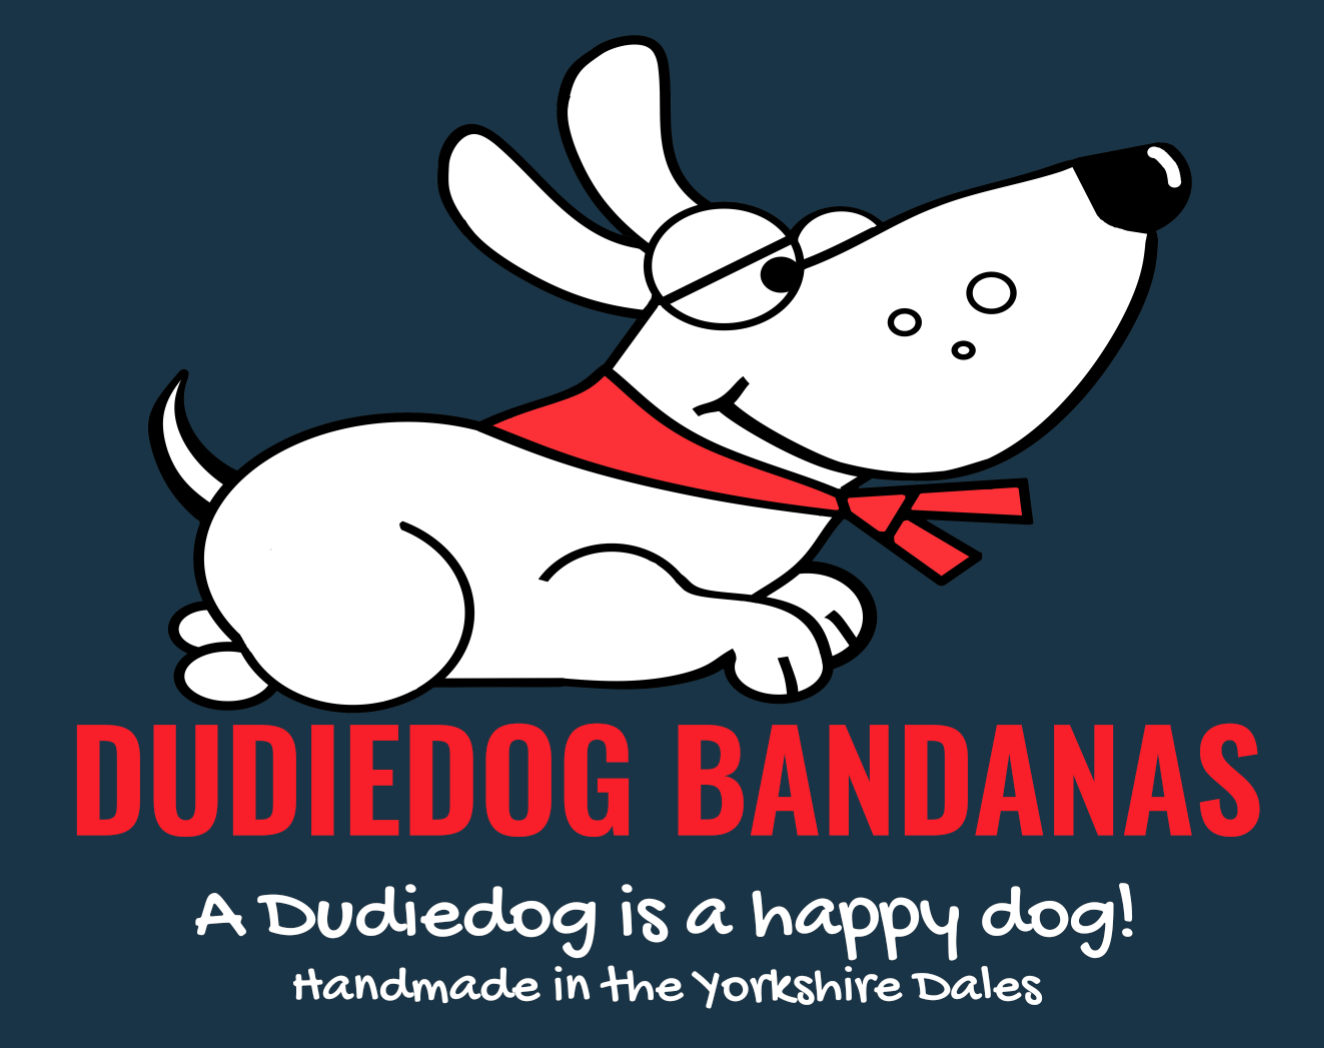 Find the best dog accessories at Dudiedog Bandanas. Free UK p&p, Worldwide delivery